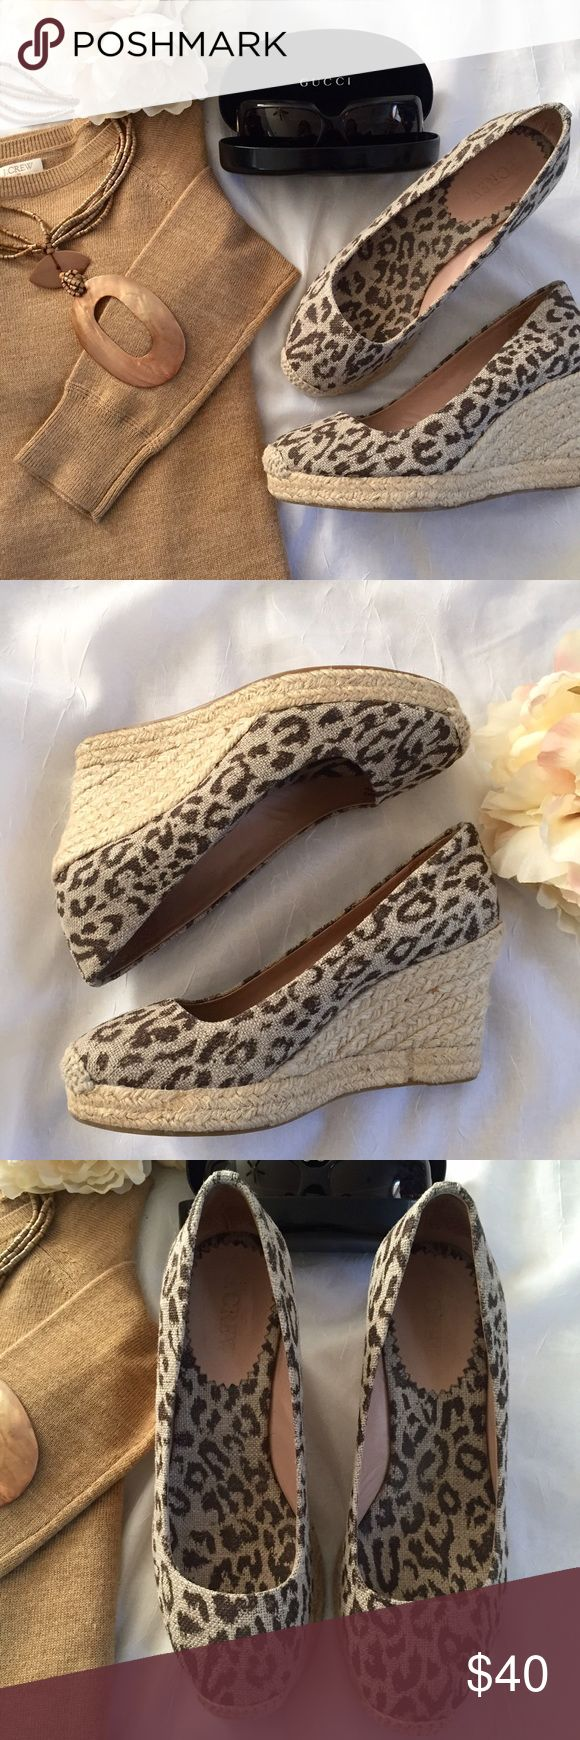 🆕 J. Crew wedge espadrilles These J. Crew animal print espadrilles are in perfect condition. No signs of wear except the bottom. Heel/wedge measurement is 3.5 inches. J. Crew Shoes Espadrilles